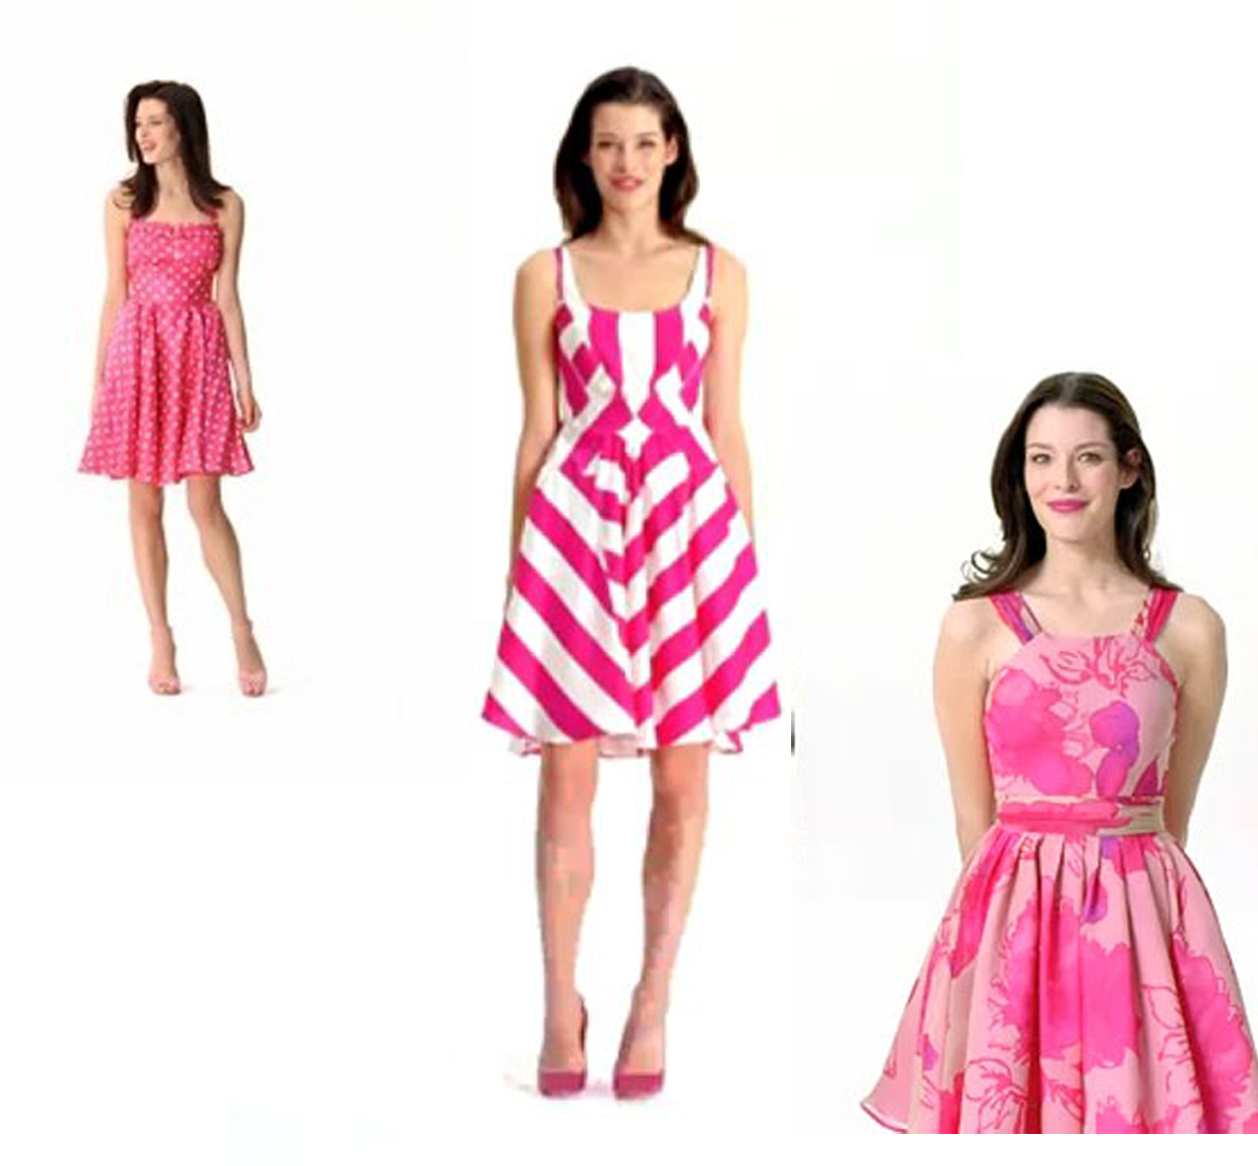 http://4.bp.blogspot.com/-zeNZRSNiep4/TX7qxFdPuvI/AAAAAAAAAP4/77pytooJ-Vk/s1600/T-Mobile-Tea-Dress-copy.jpg